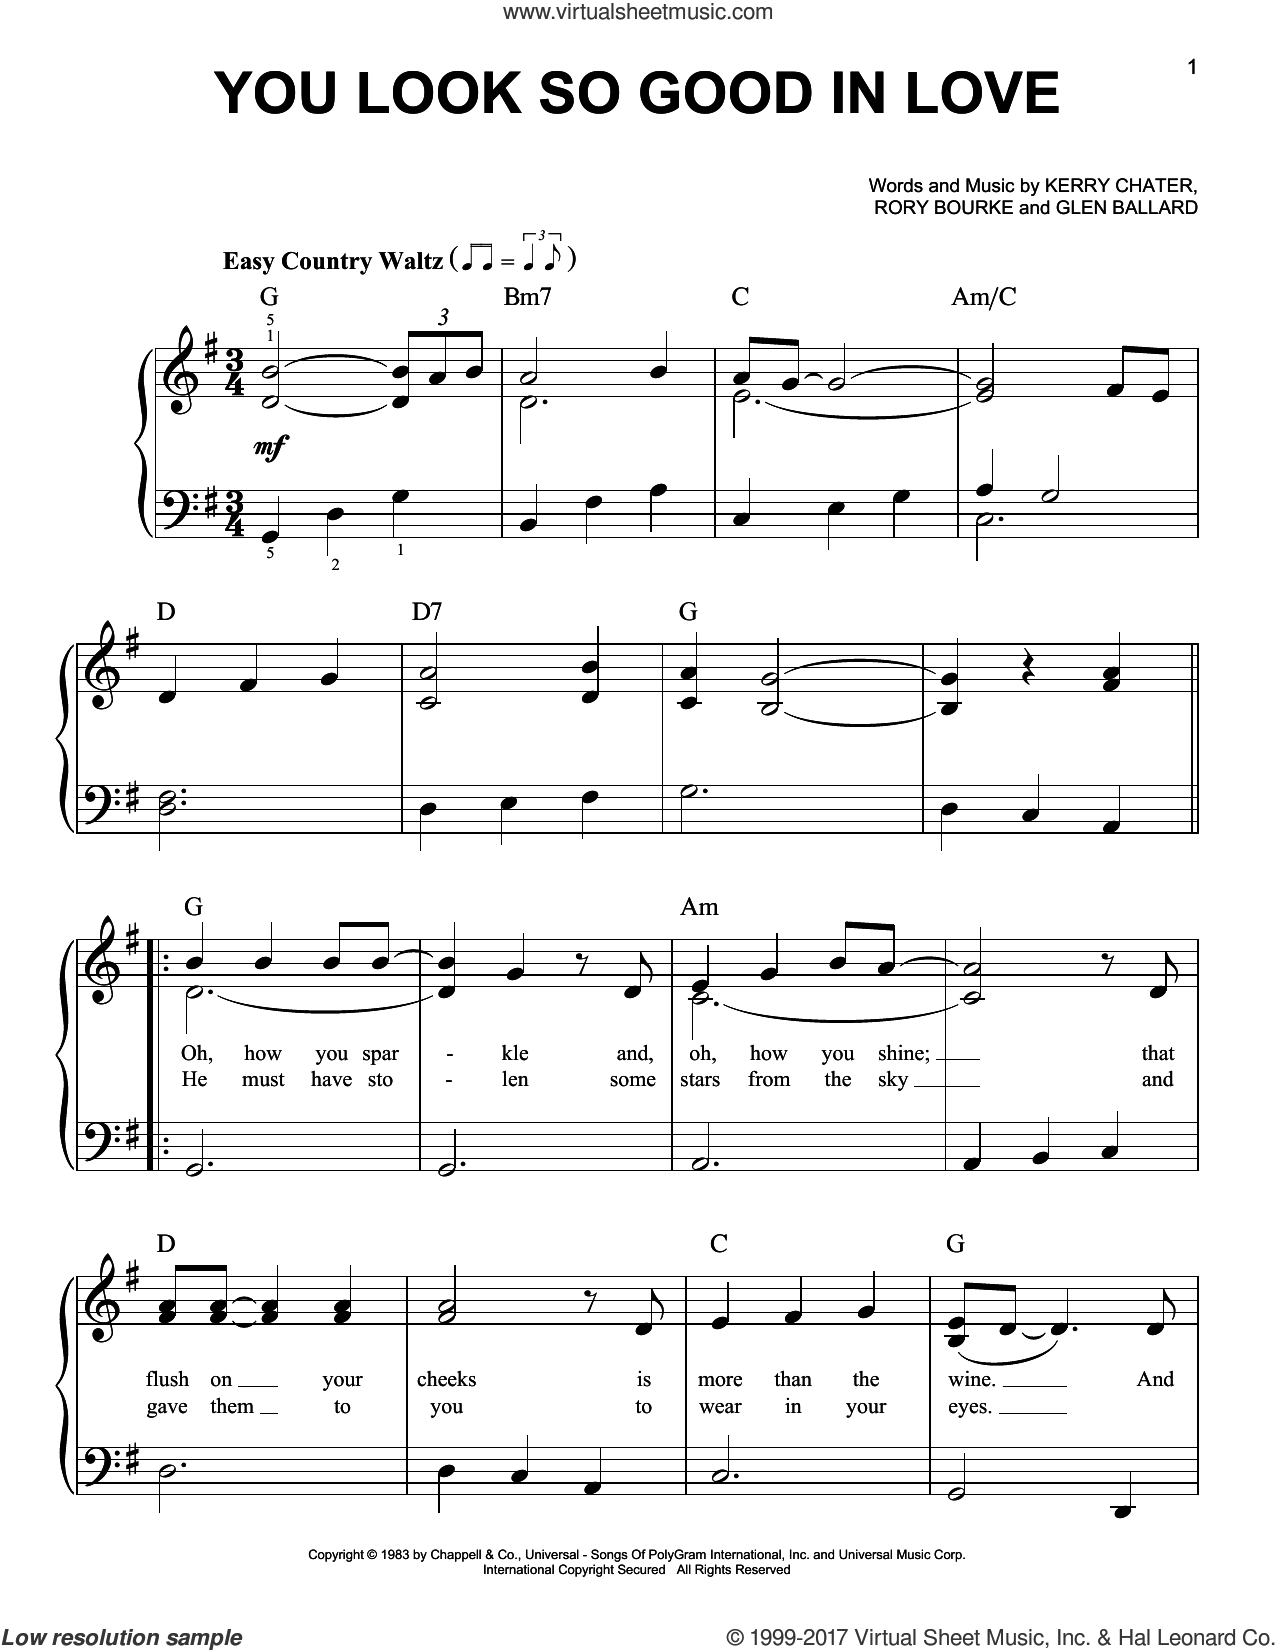 You Look So Good In Love sheet music for piano solo by George Strait, Glen Ballard, Kerry Chater and Rory Bourke, easy. Score Image Preview.